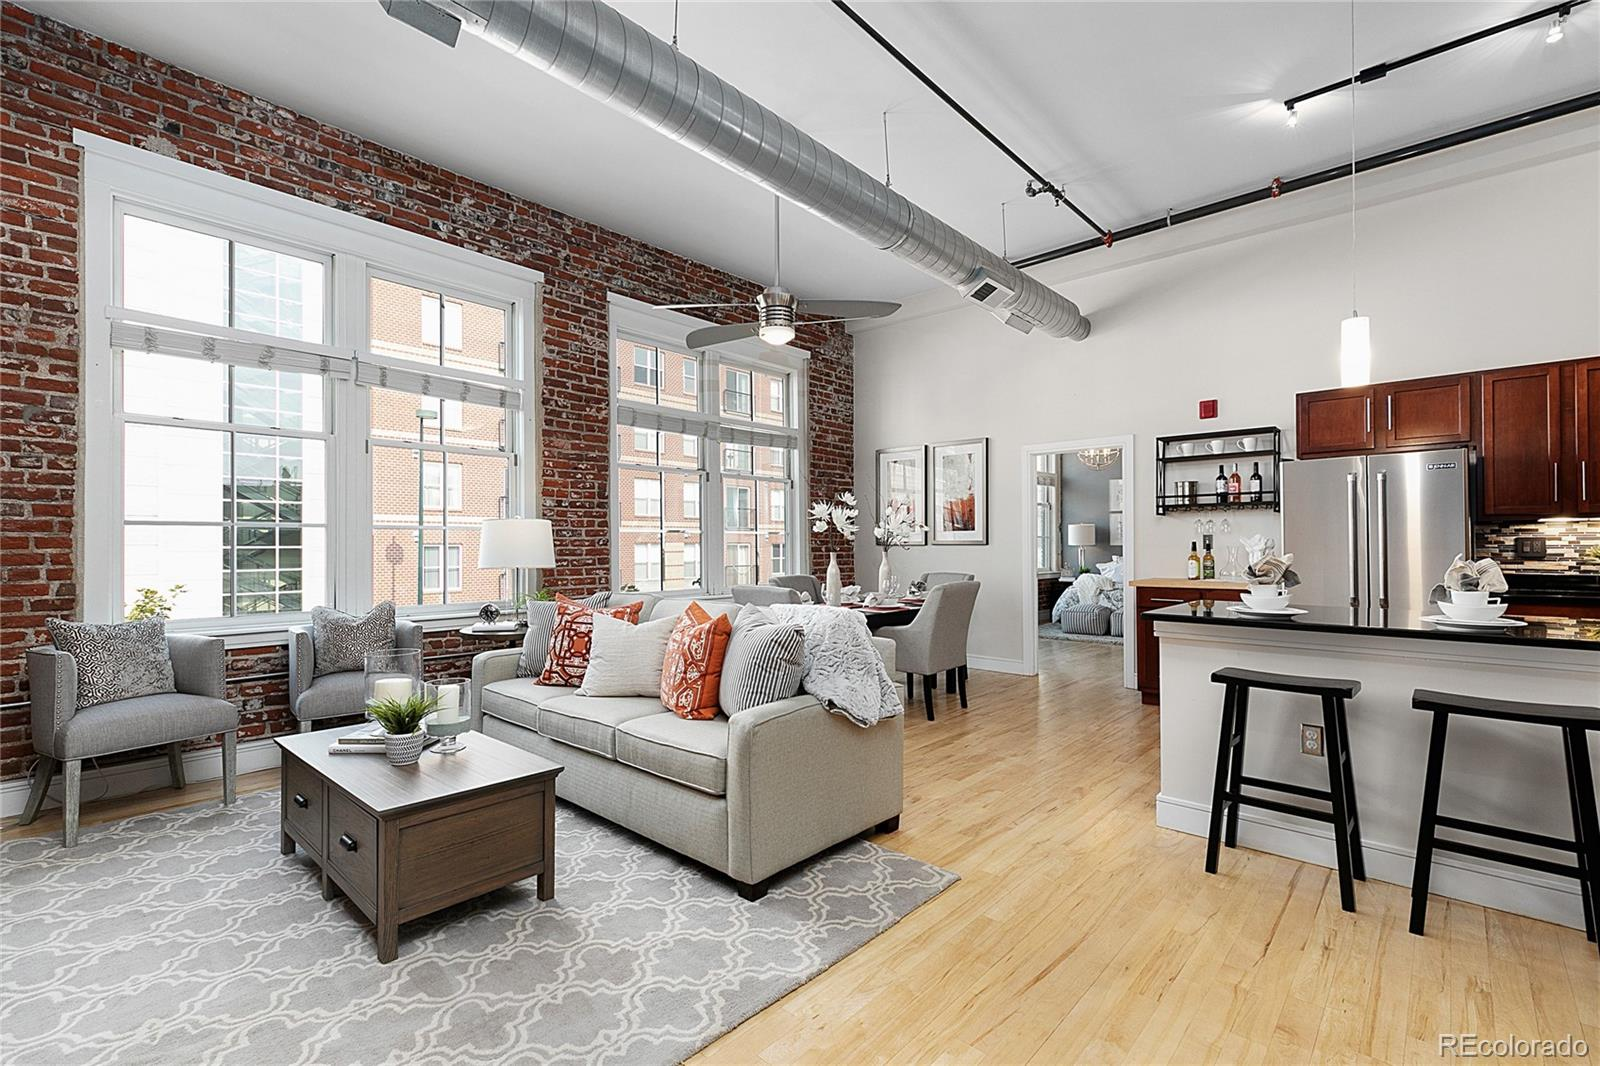 """Beautiful 2 bed/2 bath home in historic Silver State Lofts!  This home also includes a climate-controlled garage parking spot + air rights to build a private rooftop deck above the unit. Entering through the built-in Beetle Kill Pine urban mudroom (organization & shelving), the exposed bricks lead you to the main hearth – over 600 square feet of living area: gourmet kitchen (slab granite, JennAir + Bosch appliances), grand living, dining and custom laundry room – the epitome of livability and convenience.  An owners' wing with oversized master bedroom + brick + windows, attached bath with dual shower + vanity and massive closet are complimented by the second bedroom/office flex place + full bath provide the opportunity to create dual masters specific to this floor plan.  This loft has """"air-rights"""" above, so a private rooftop deck could be your next endeavor – elevating this home to the next level (literally) in the heart of RiNo.  HOA includes 1GB WiFi for the unit and on both rooftops."""